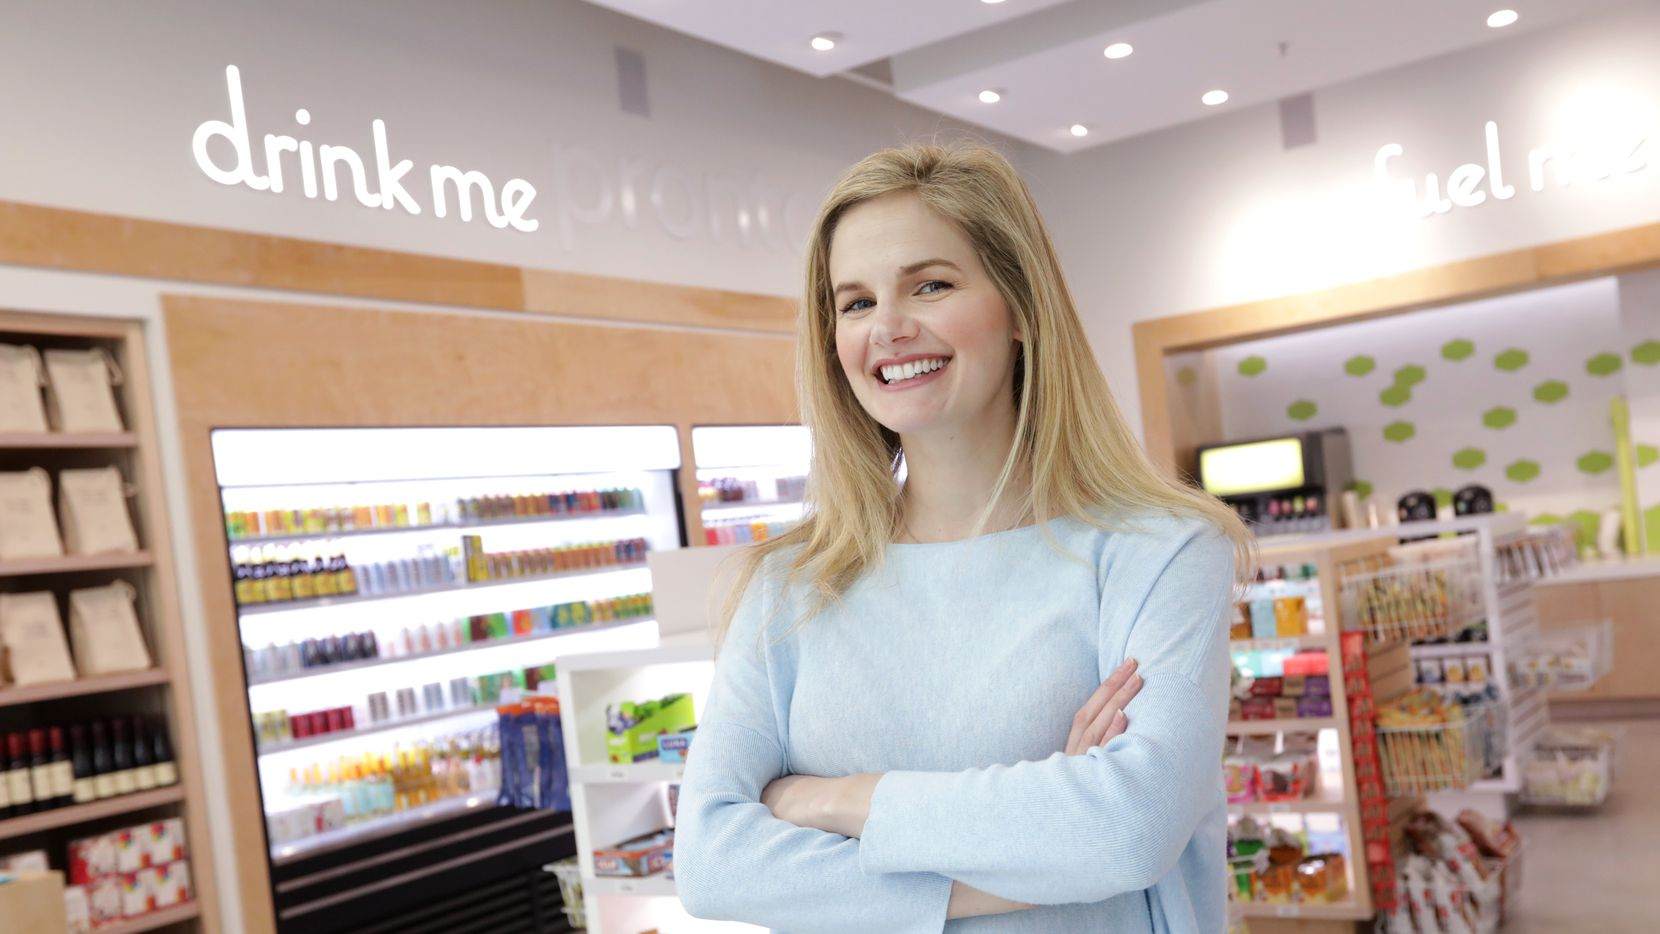 Morgan Pieper is the CEO of Feed Me Pronto, a convenience store with an emphasis on healthful, non-GMO and organic ingredients.